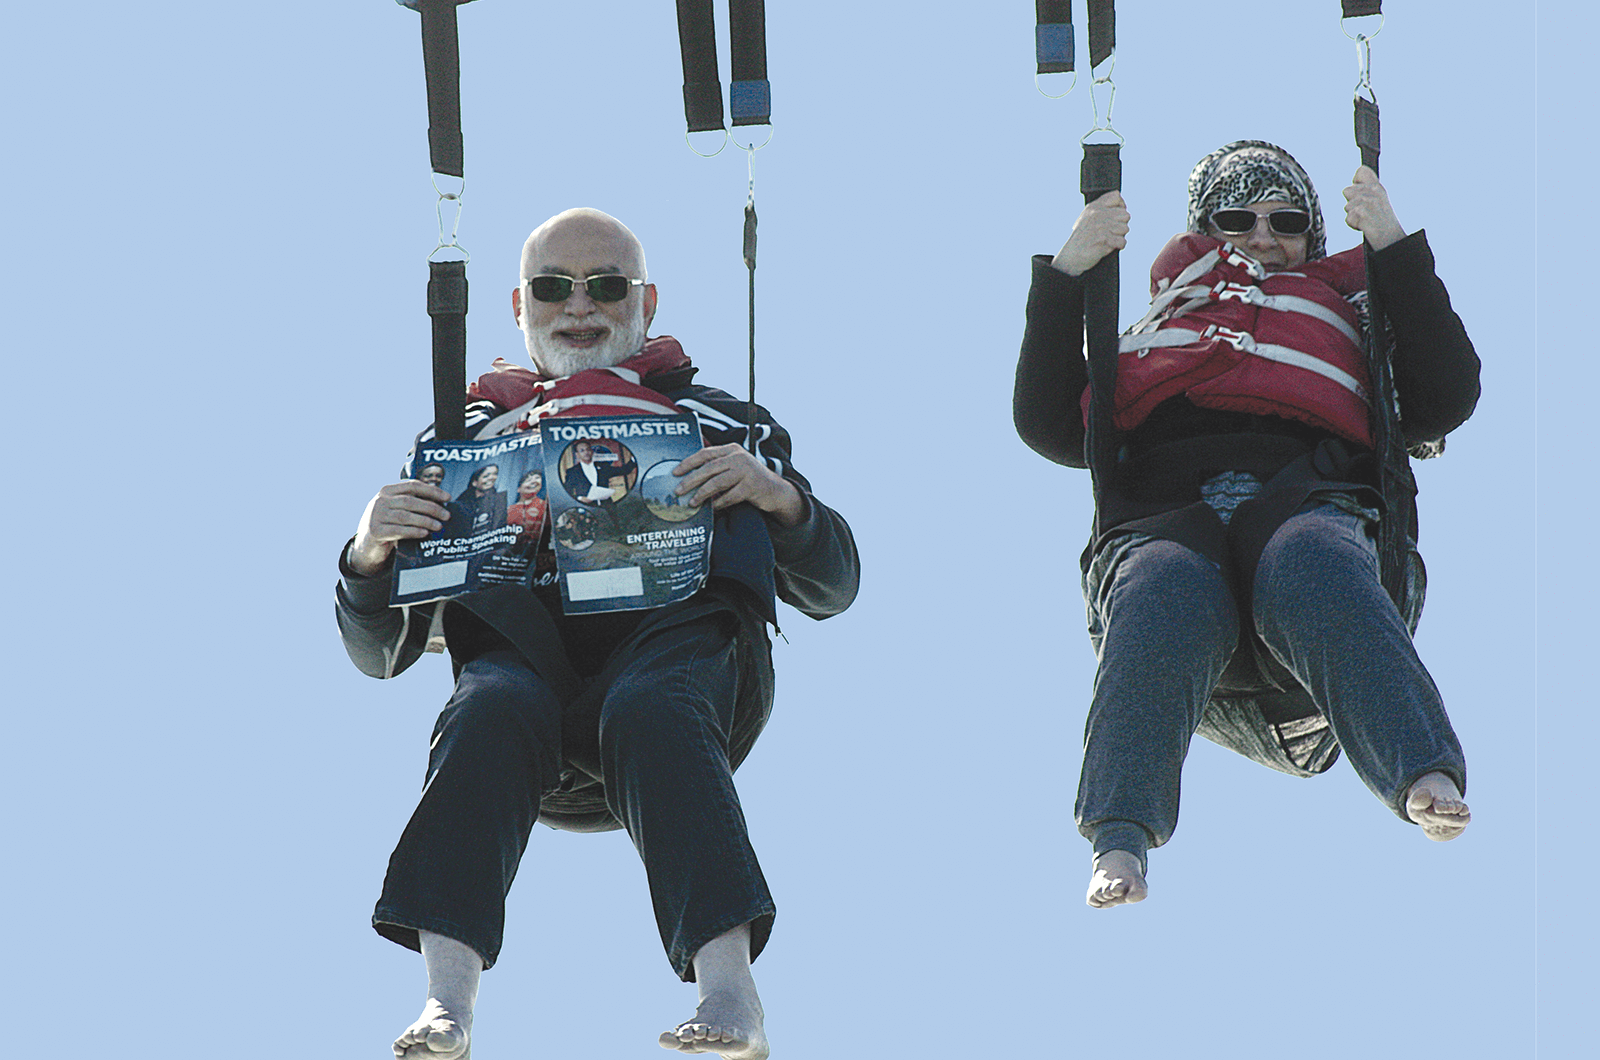 Mohomed Ikhlas Farid, DTM, and his wife, SHAISTA, of Doha, Qatar, take the Toastmaster to new heights while parasailing in Cape Canaveral, Florida.